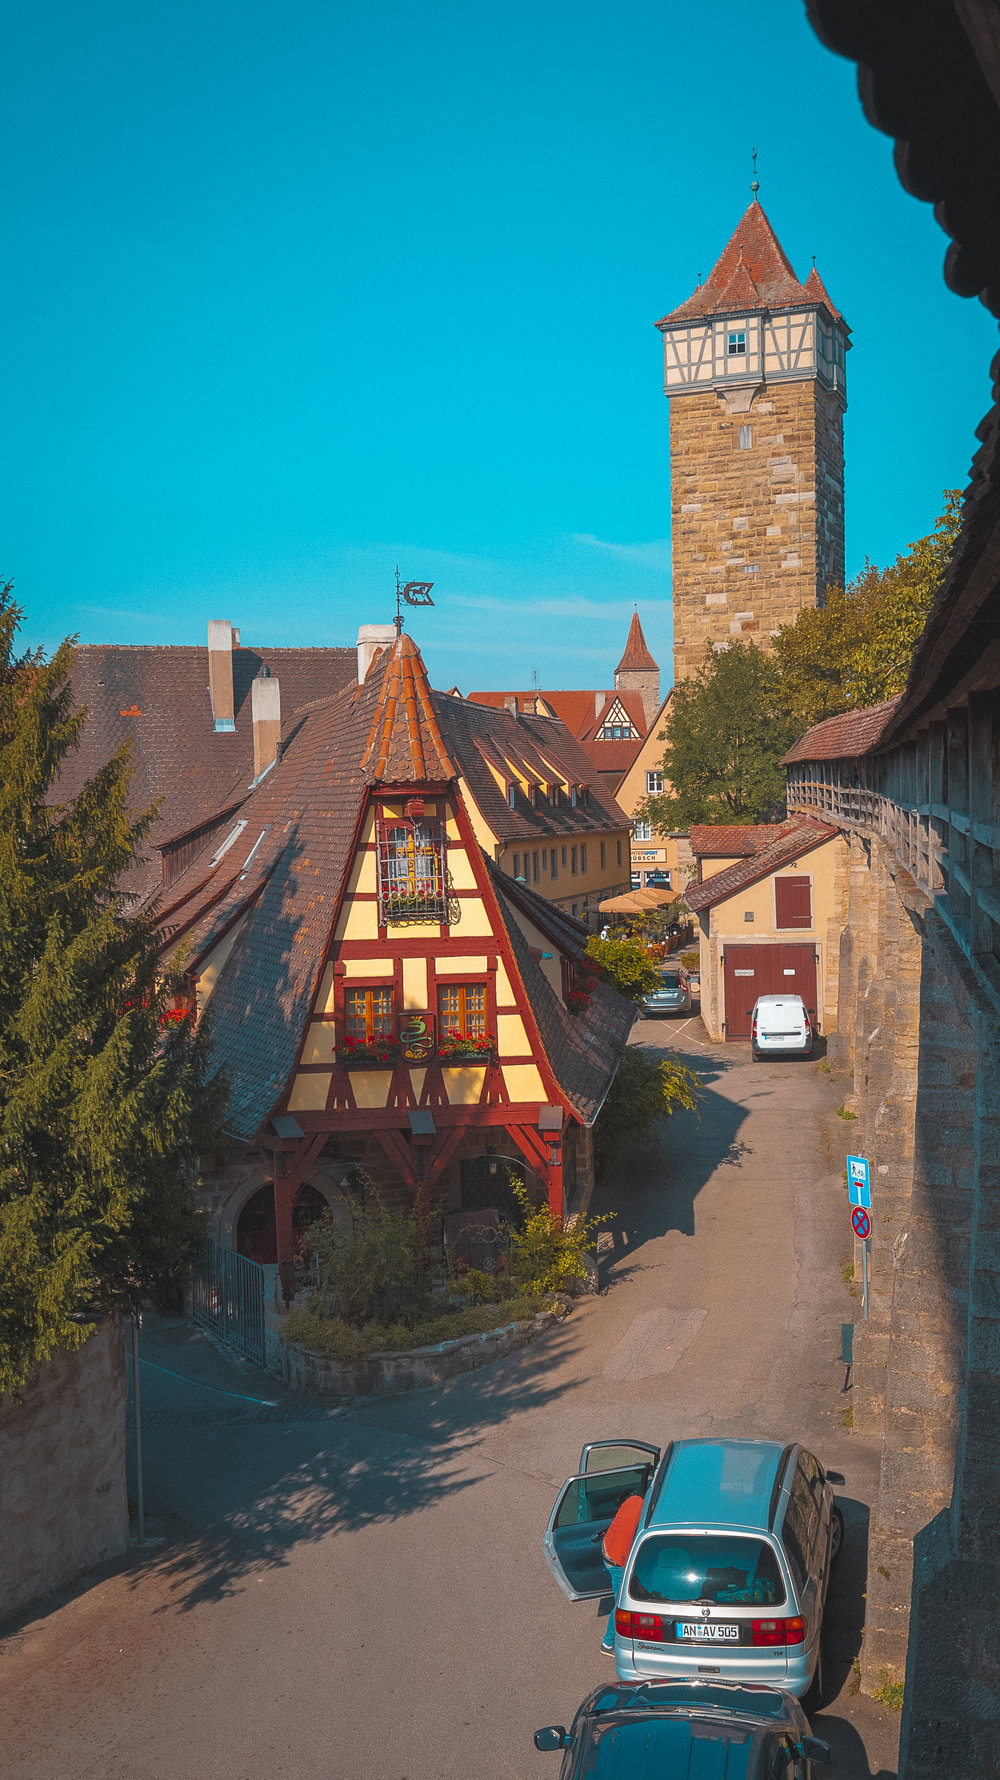 Gerlachschmiede (Old Forge).